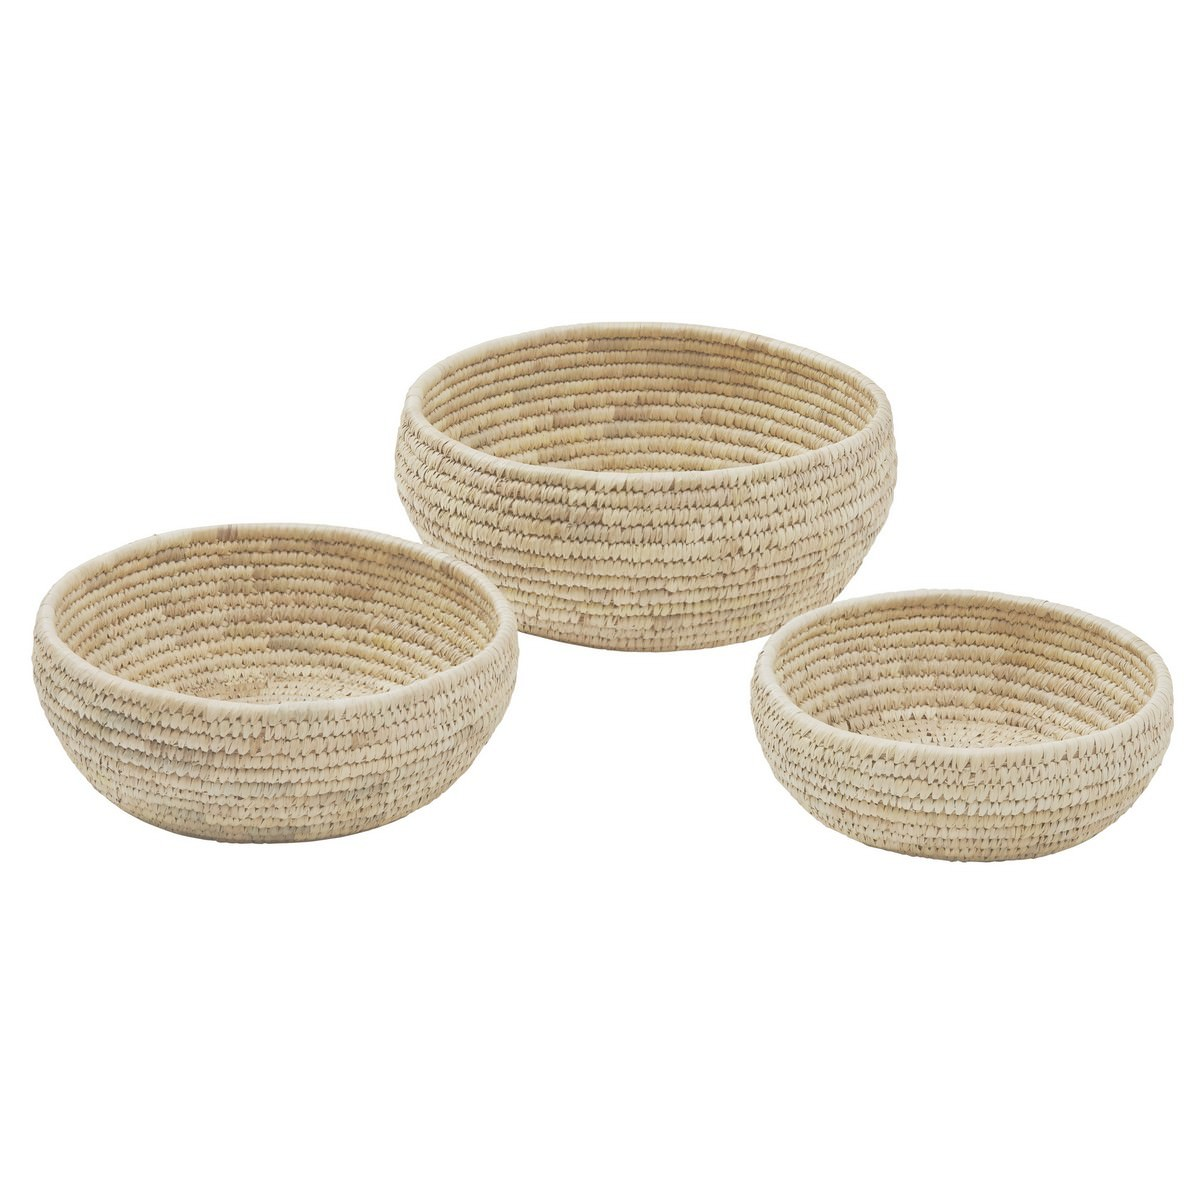 Bolla 3 Piece Kans Grass & Date Leaf Bowl Set